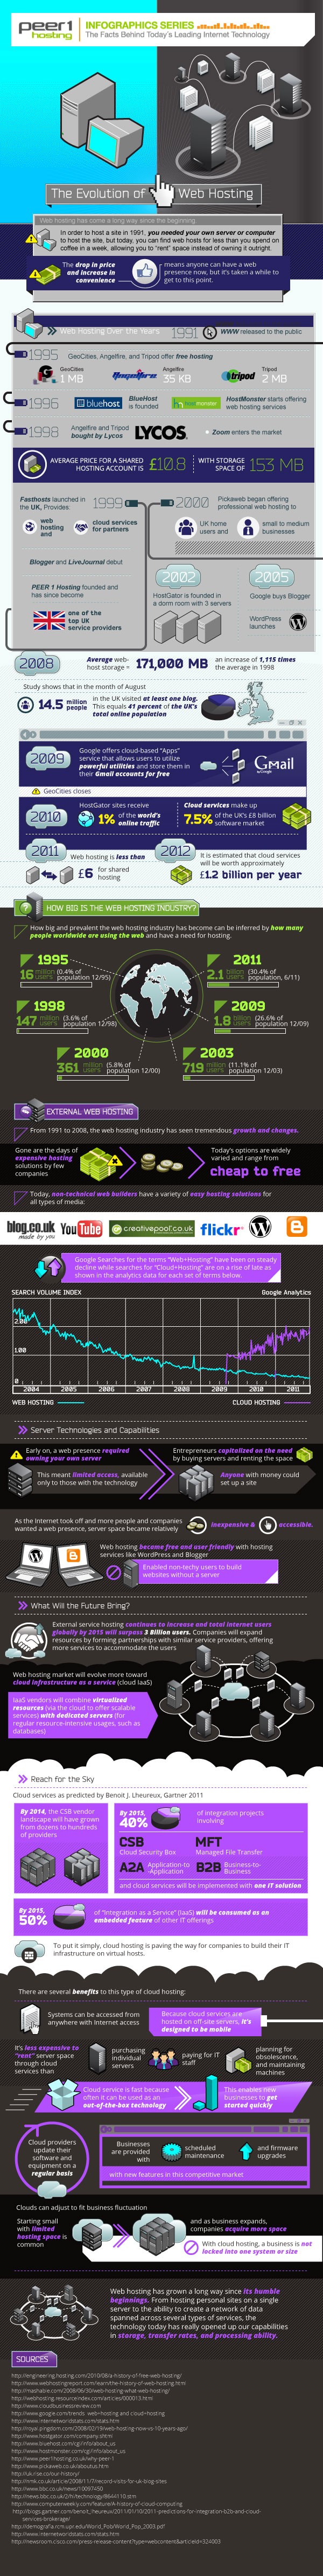 How web hosting industry evolved